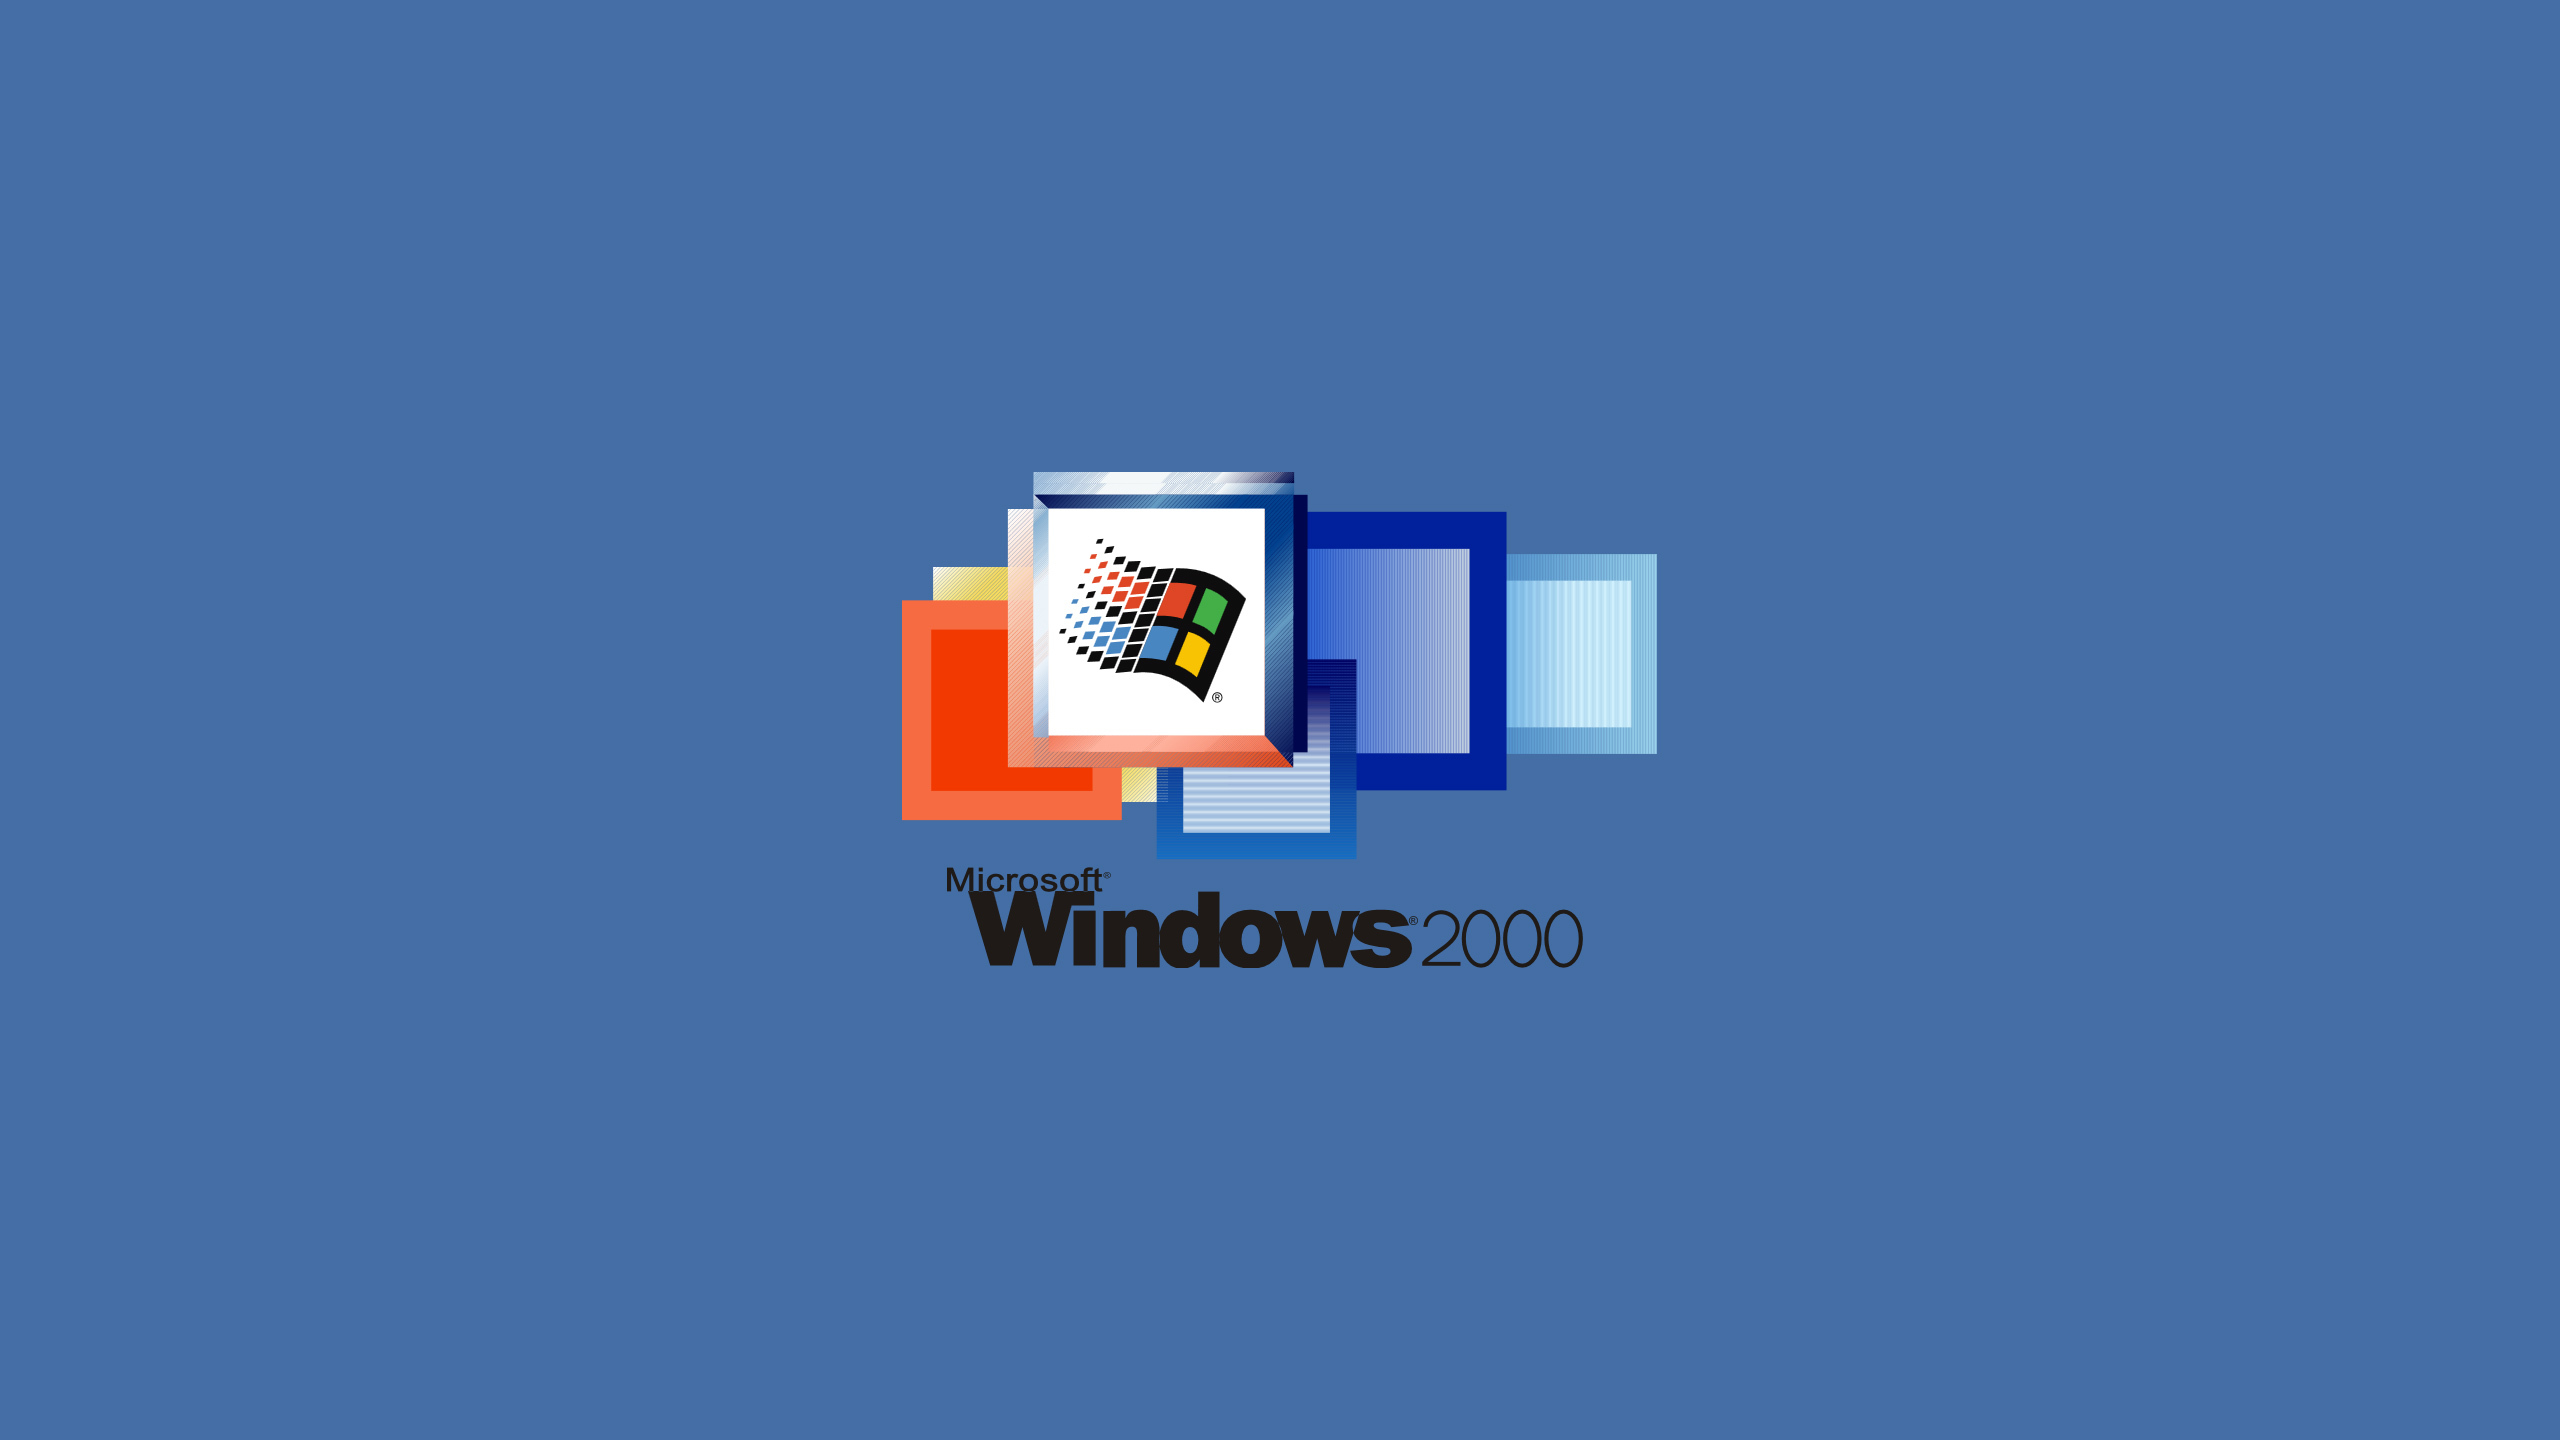 2560x1440 Windows 2000 1440P Resolution HD 4k Wallpapers. Images. Backgrounds. Photos and Pictures